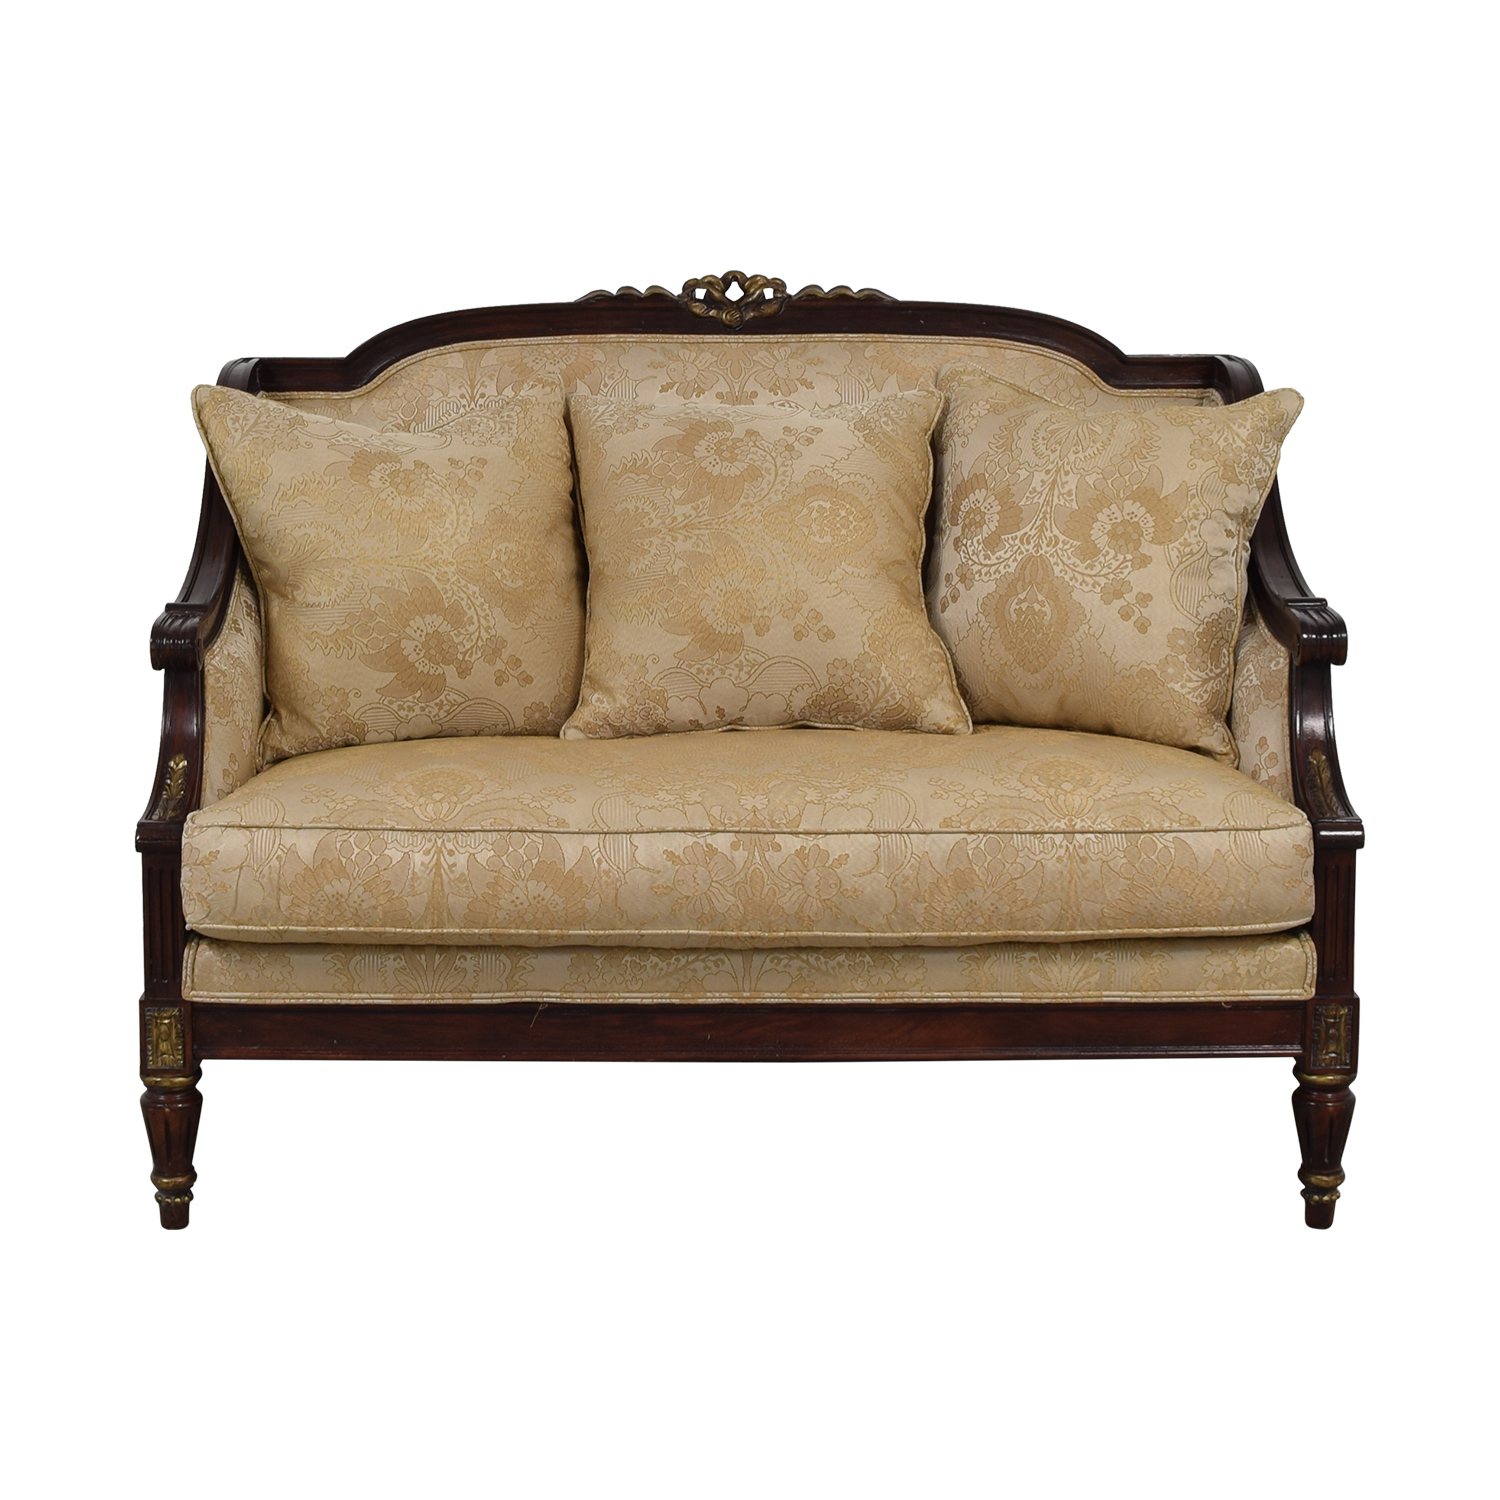 Jeffco Furniture Jeffco Furniture Beige Jacquard and Wood Love Seat price